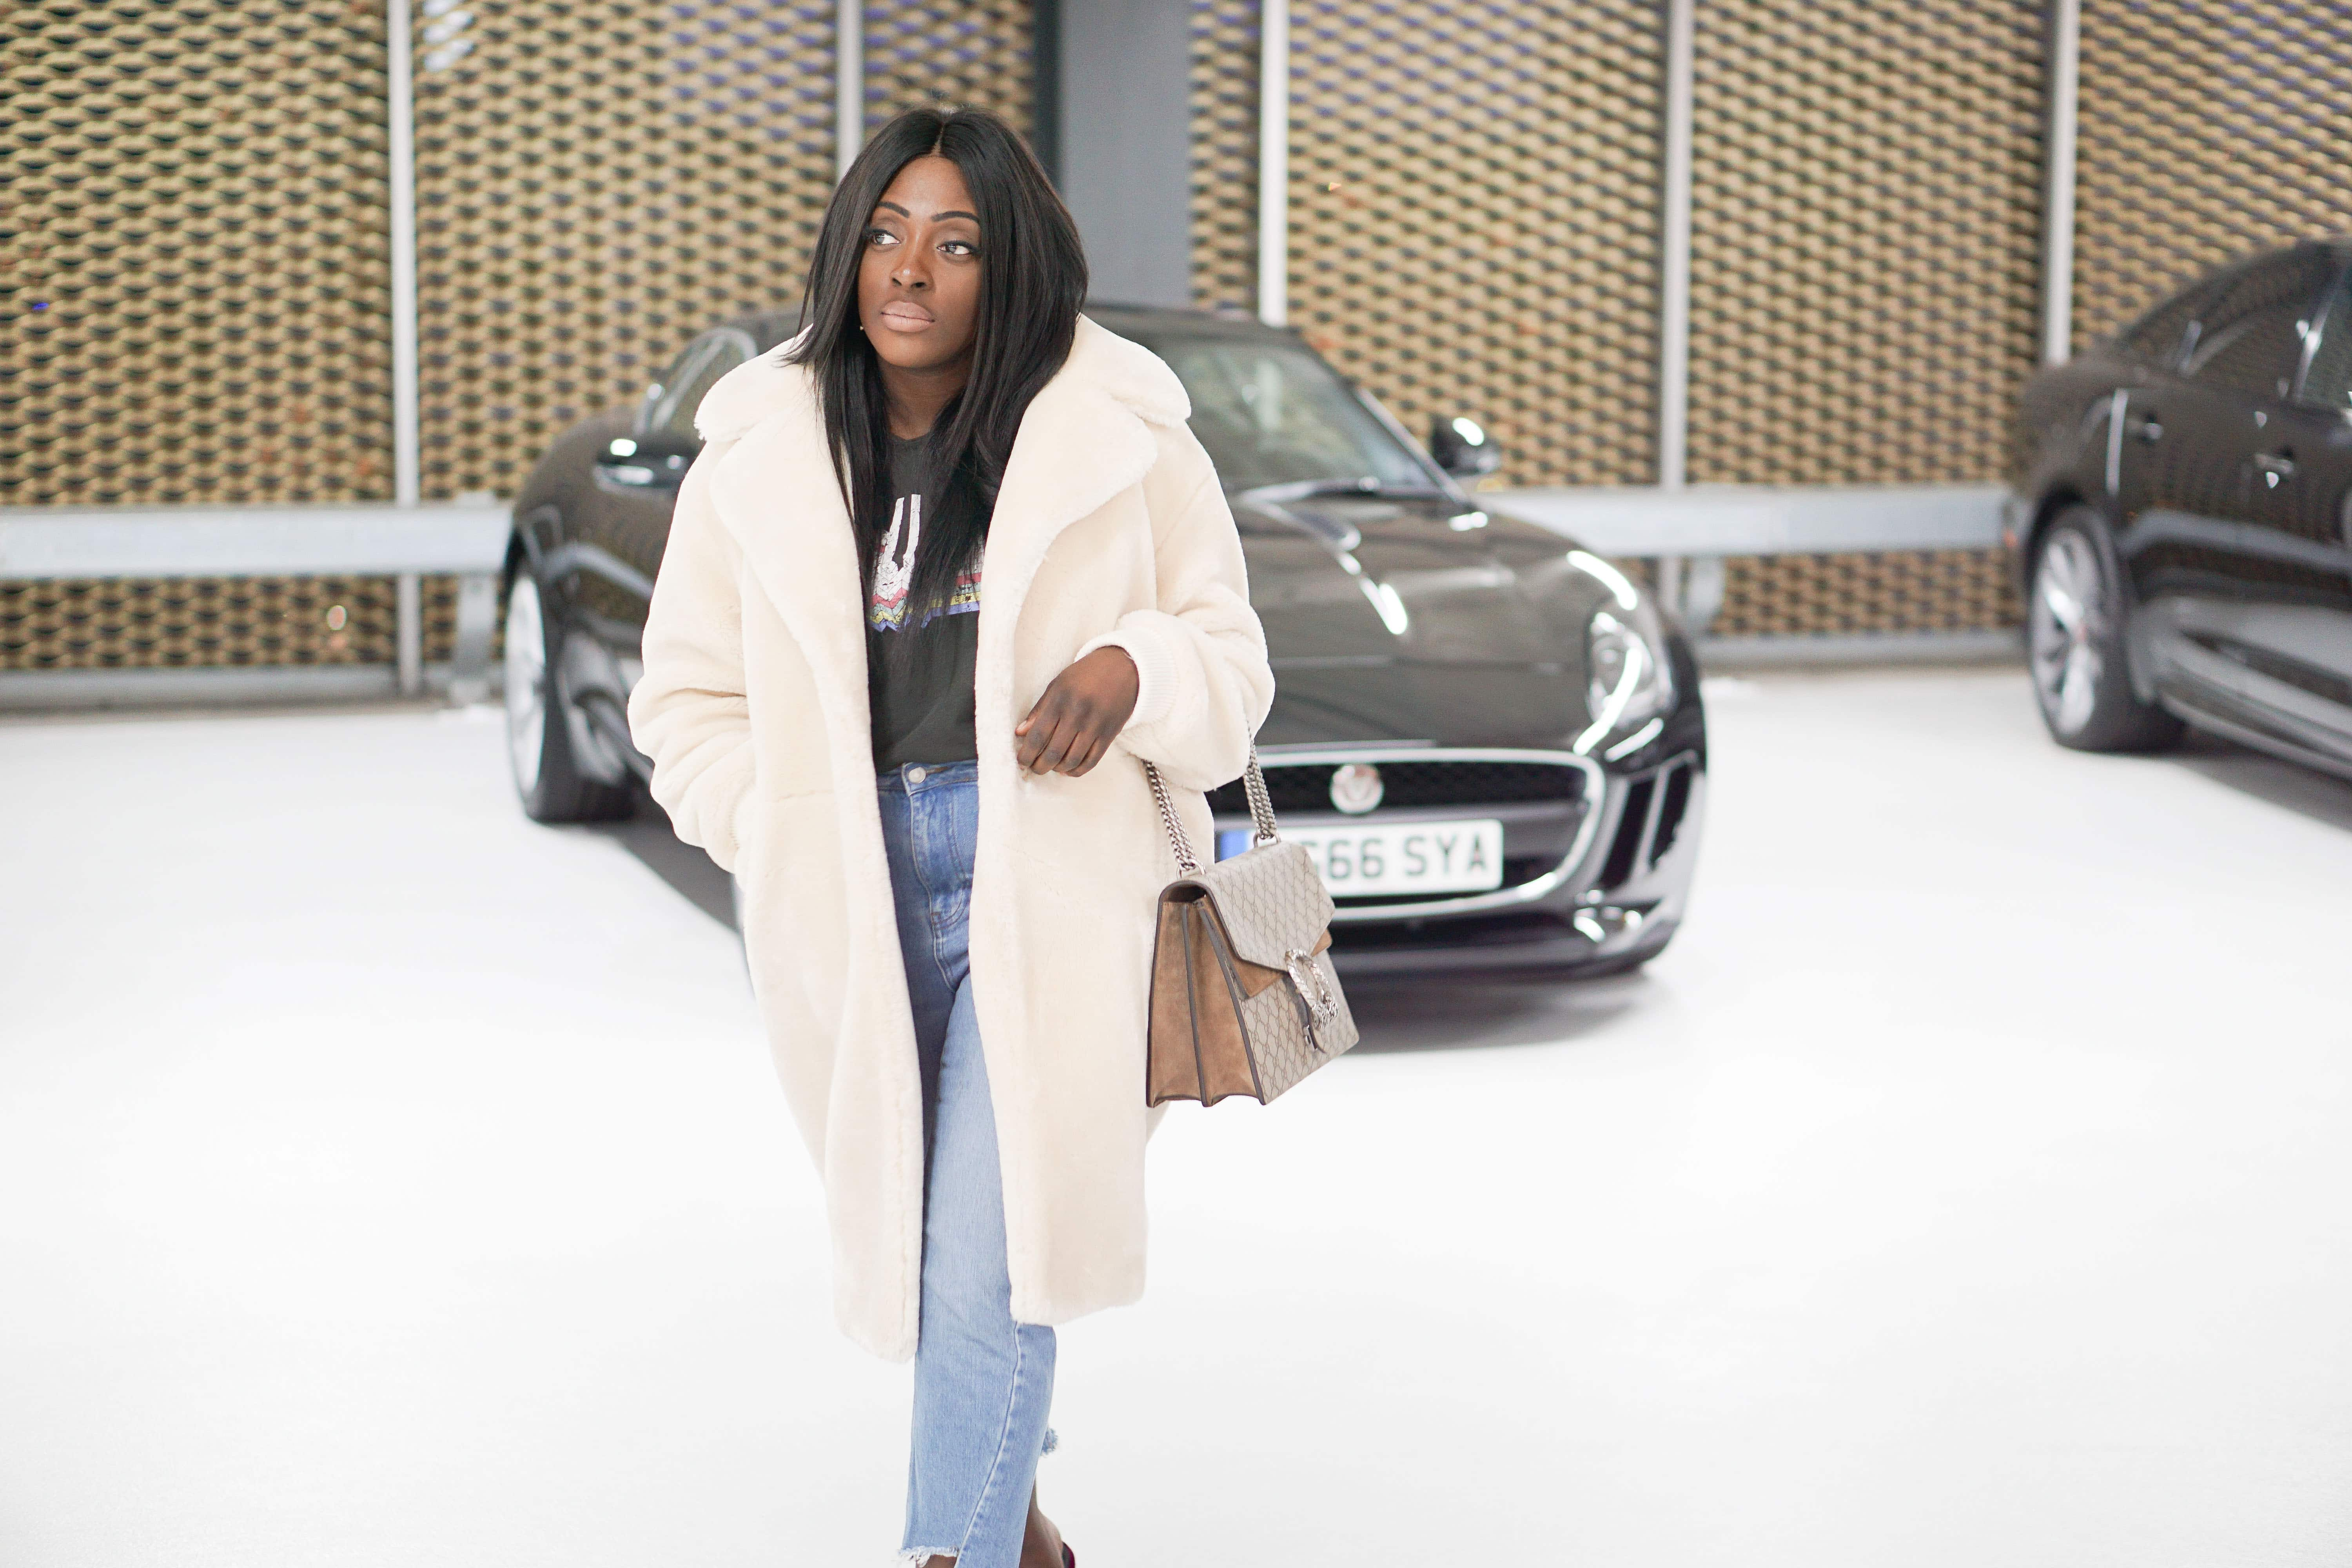 Fur Coats and Winter Car Park Sass - Style and the Sass